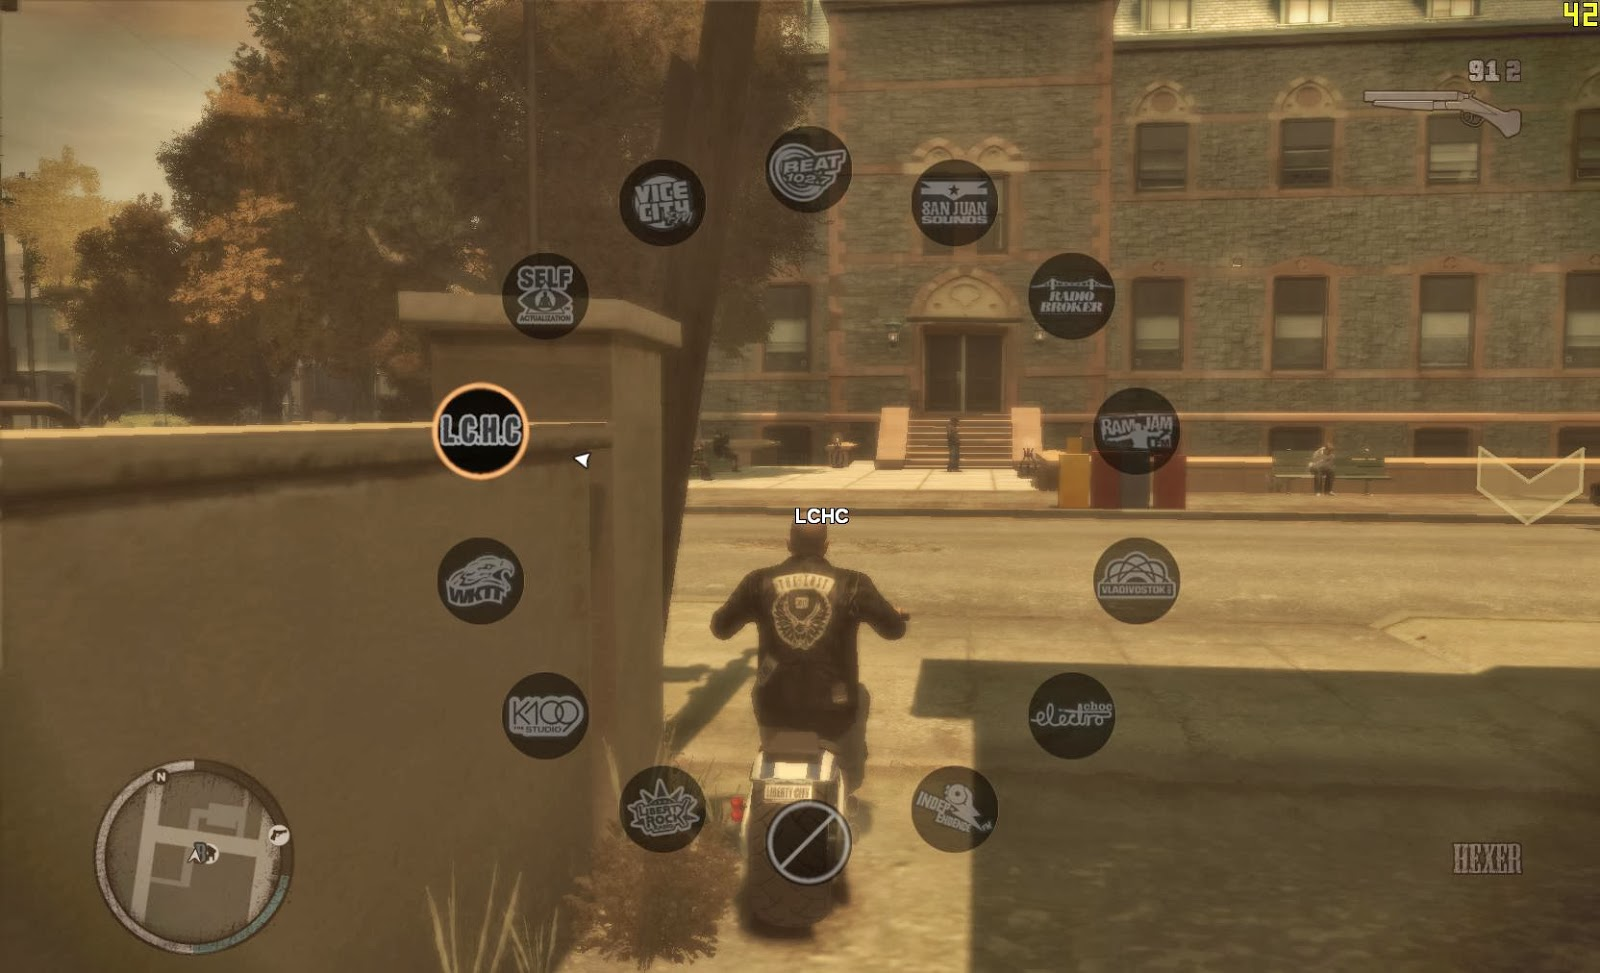 Grand theft auto 4 game mods that  hentay pictures